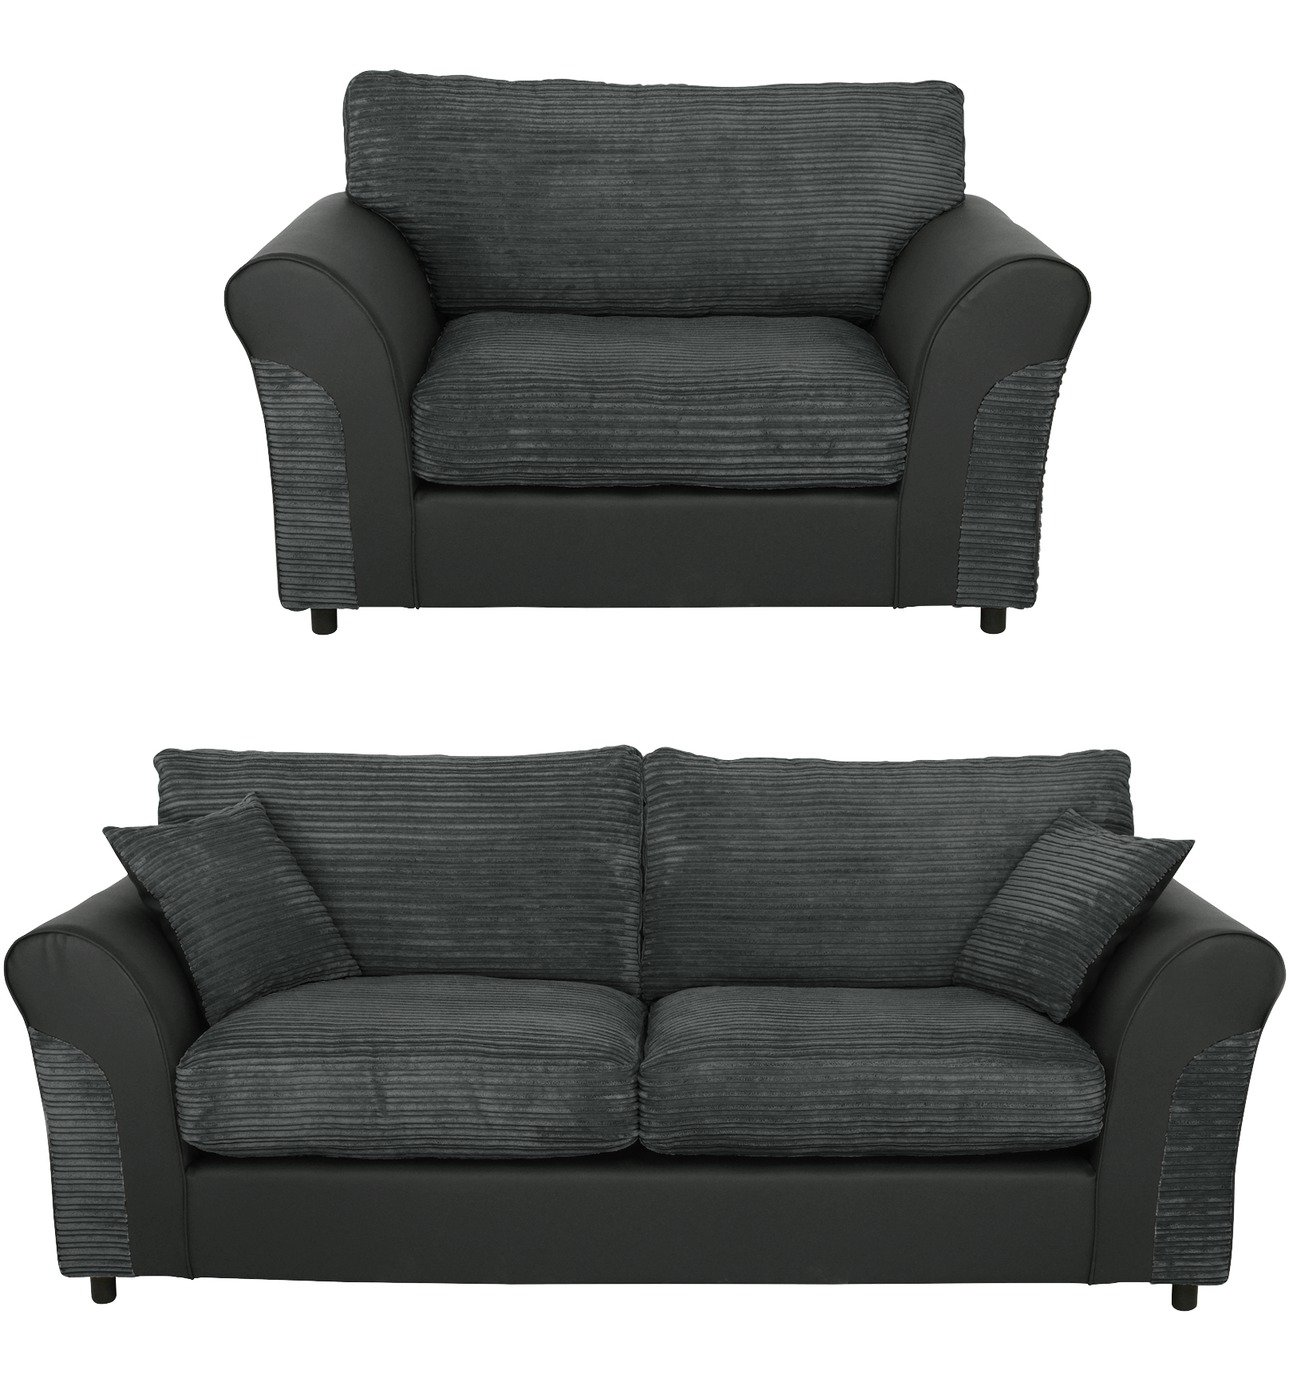 black 3 seater sofa and cuddle chair pottery barn pearce sale sets suites packages argos home harry fabric charcoal